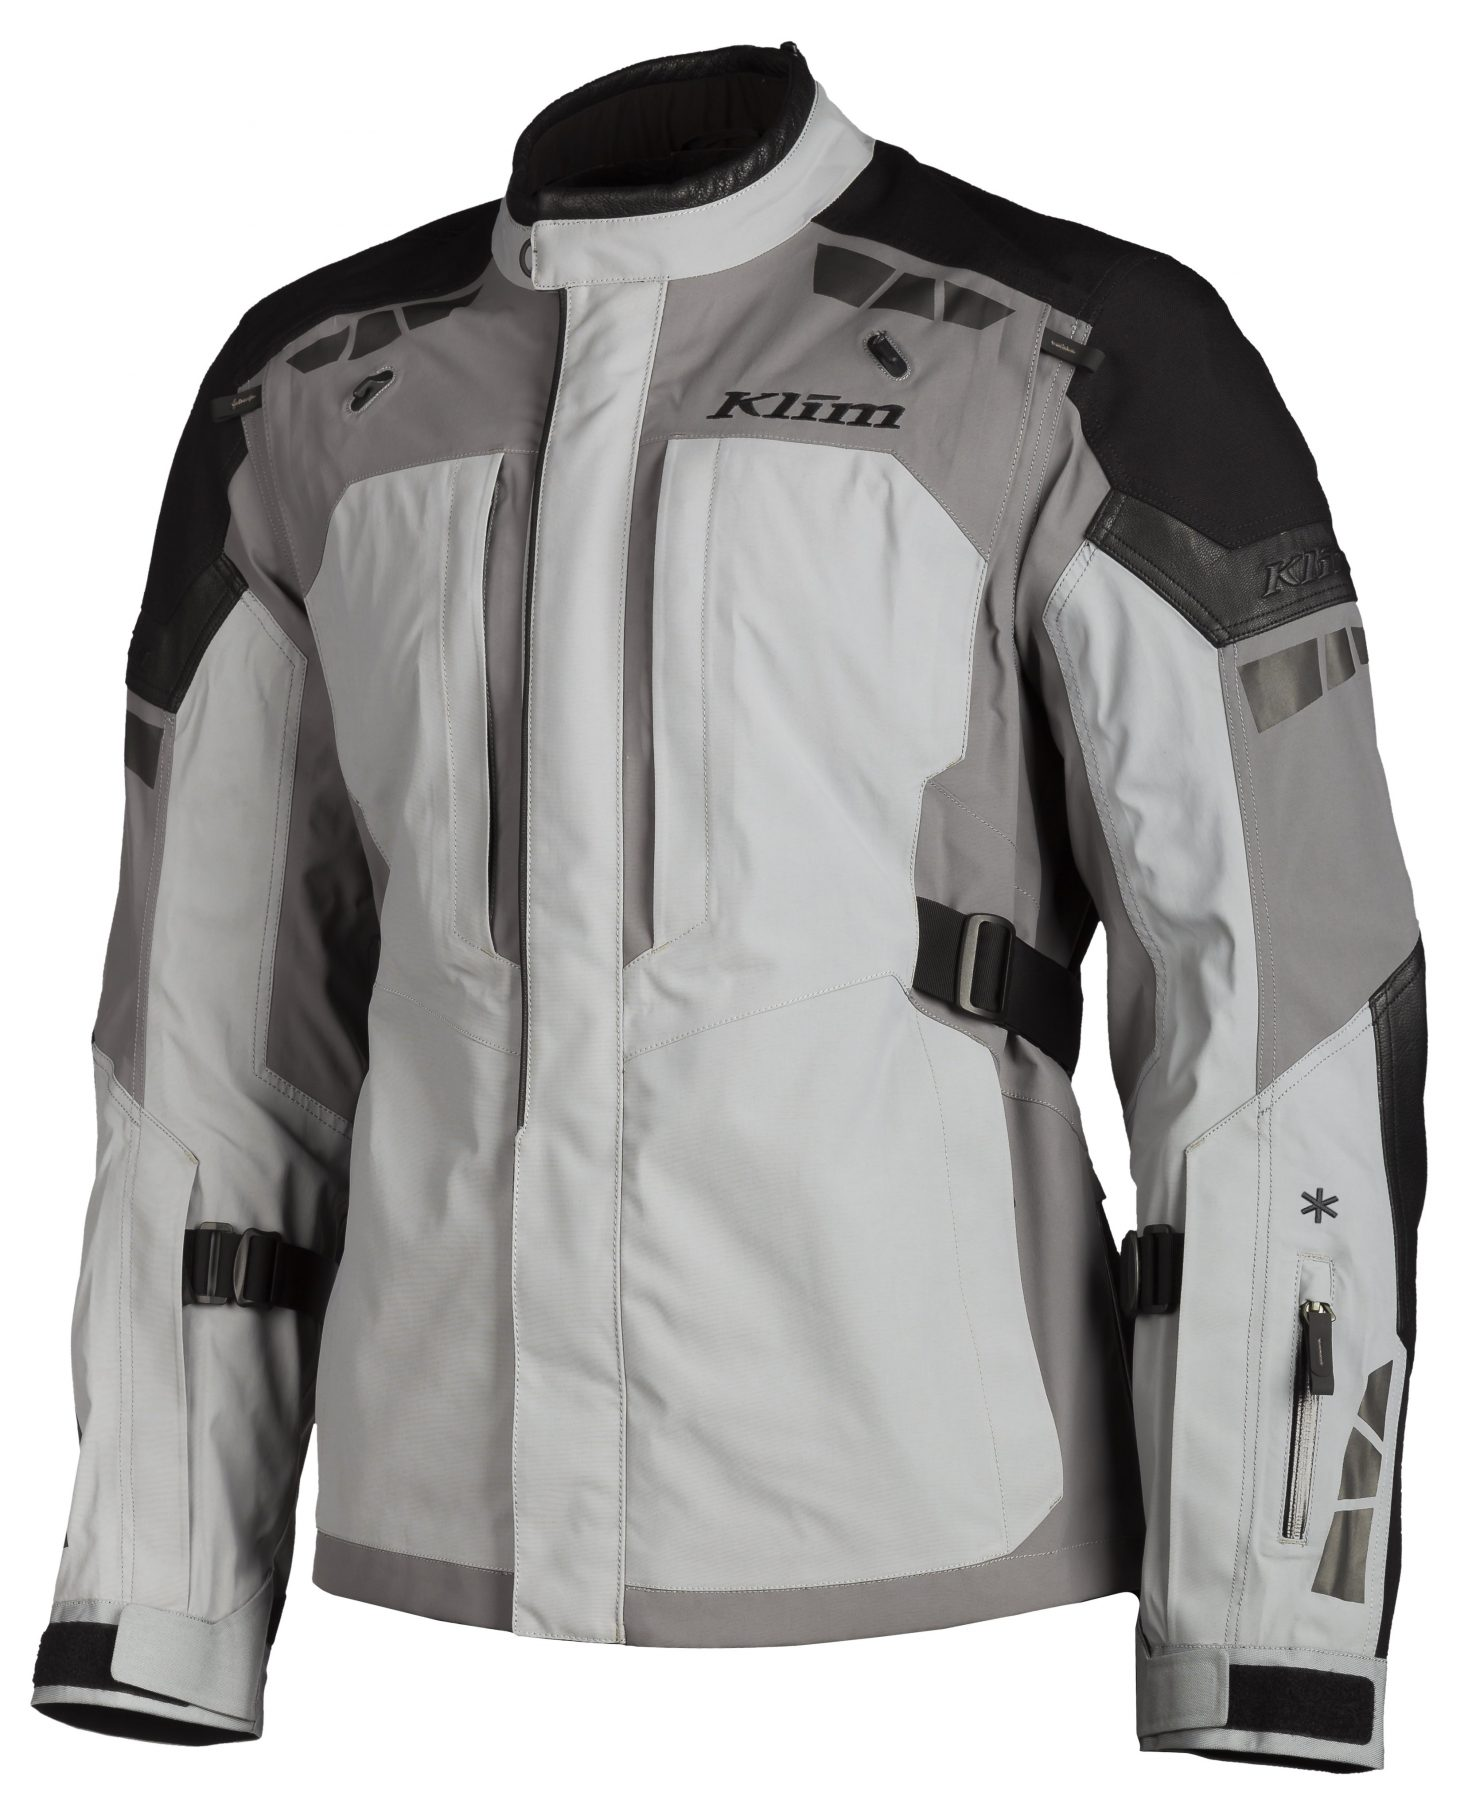 Latitude Jacket_5146-003_Gray_02